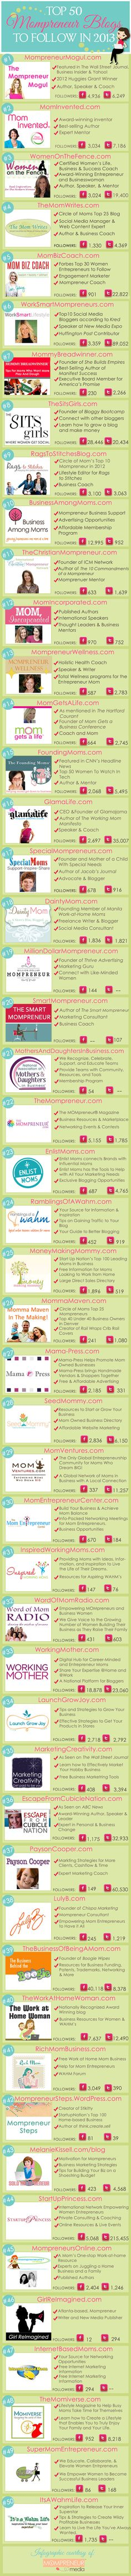 50 Top Mompreneur Blogs To Follow #infographic